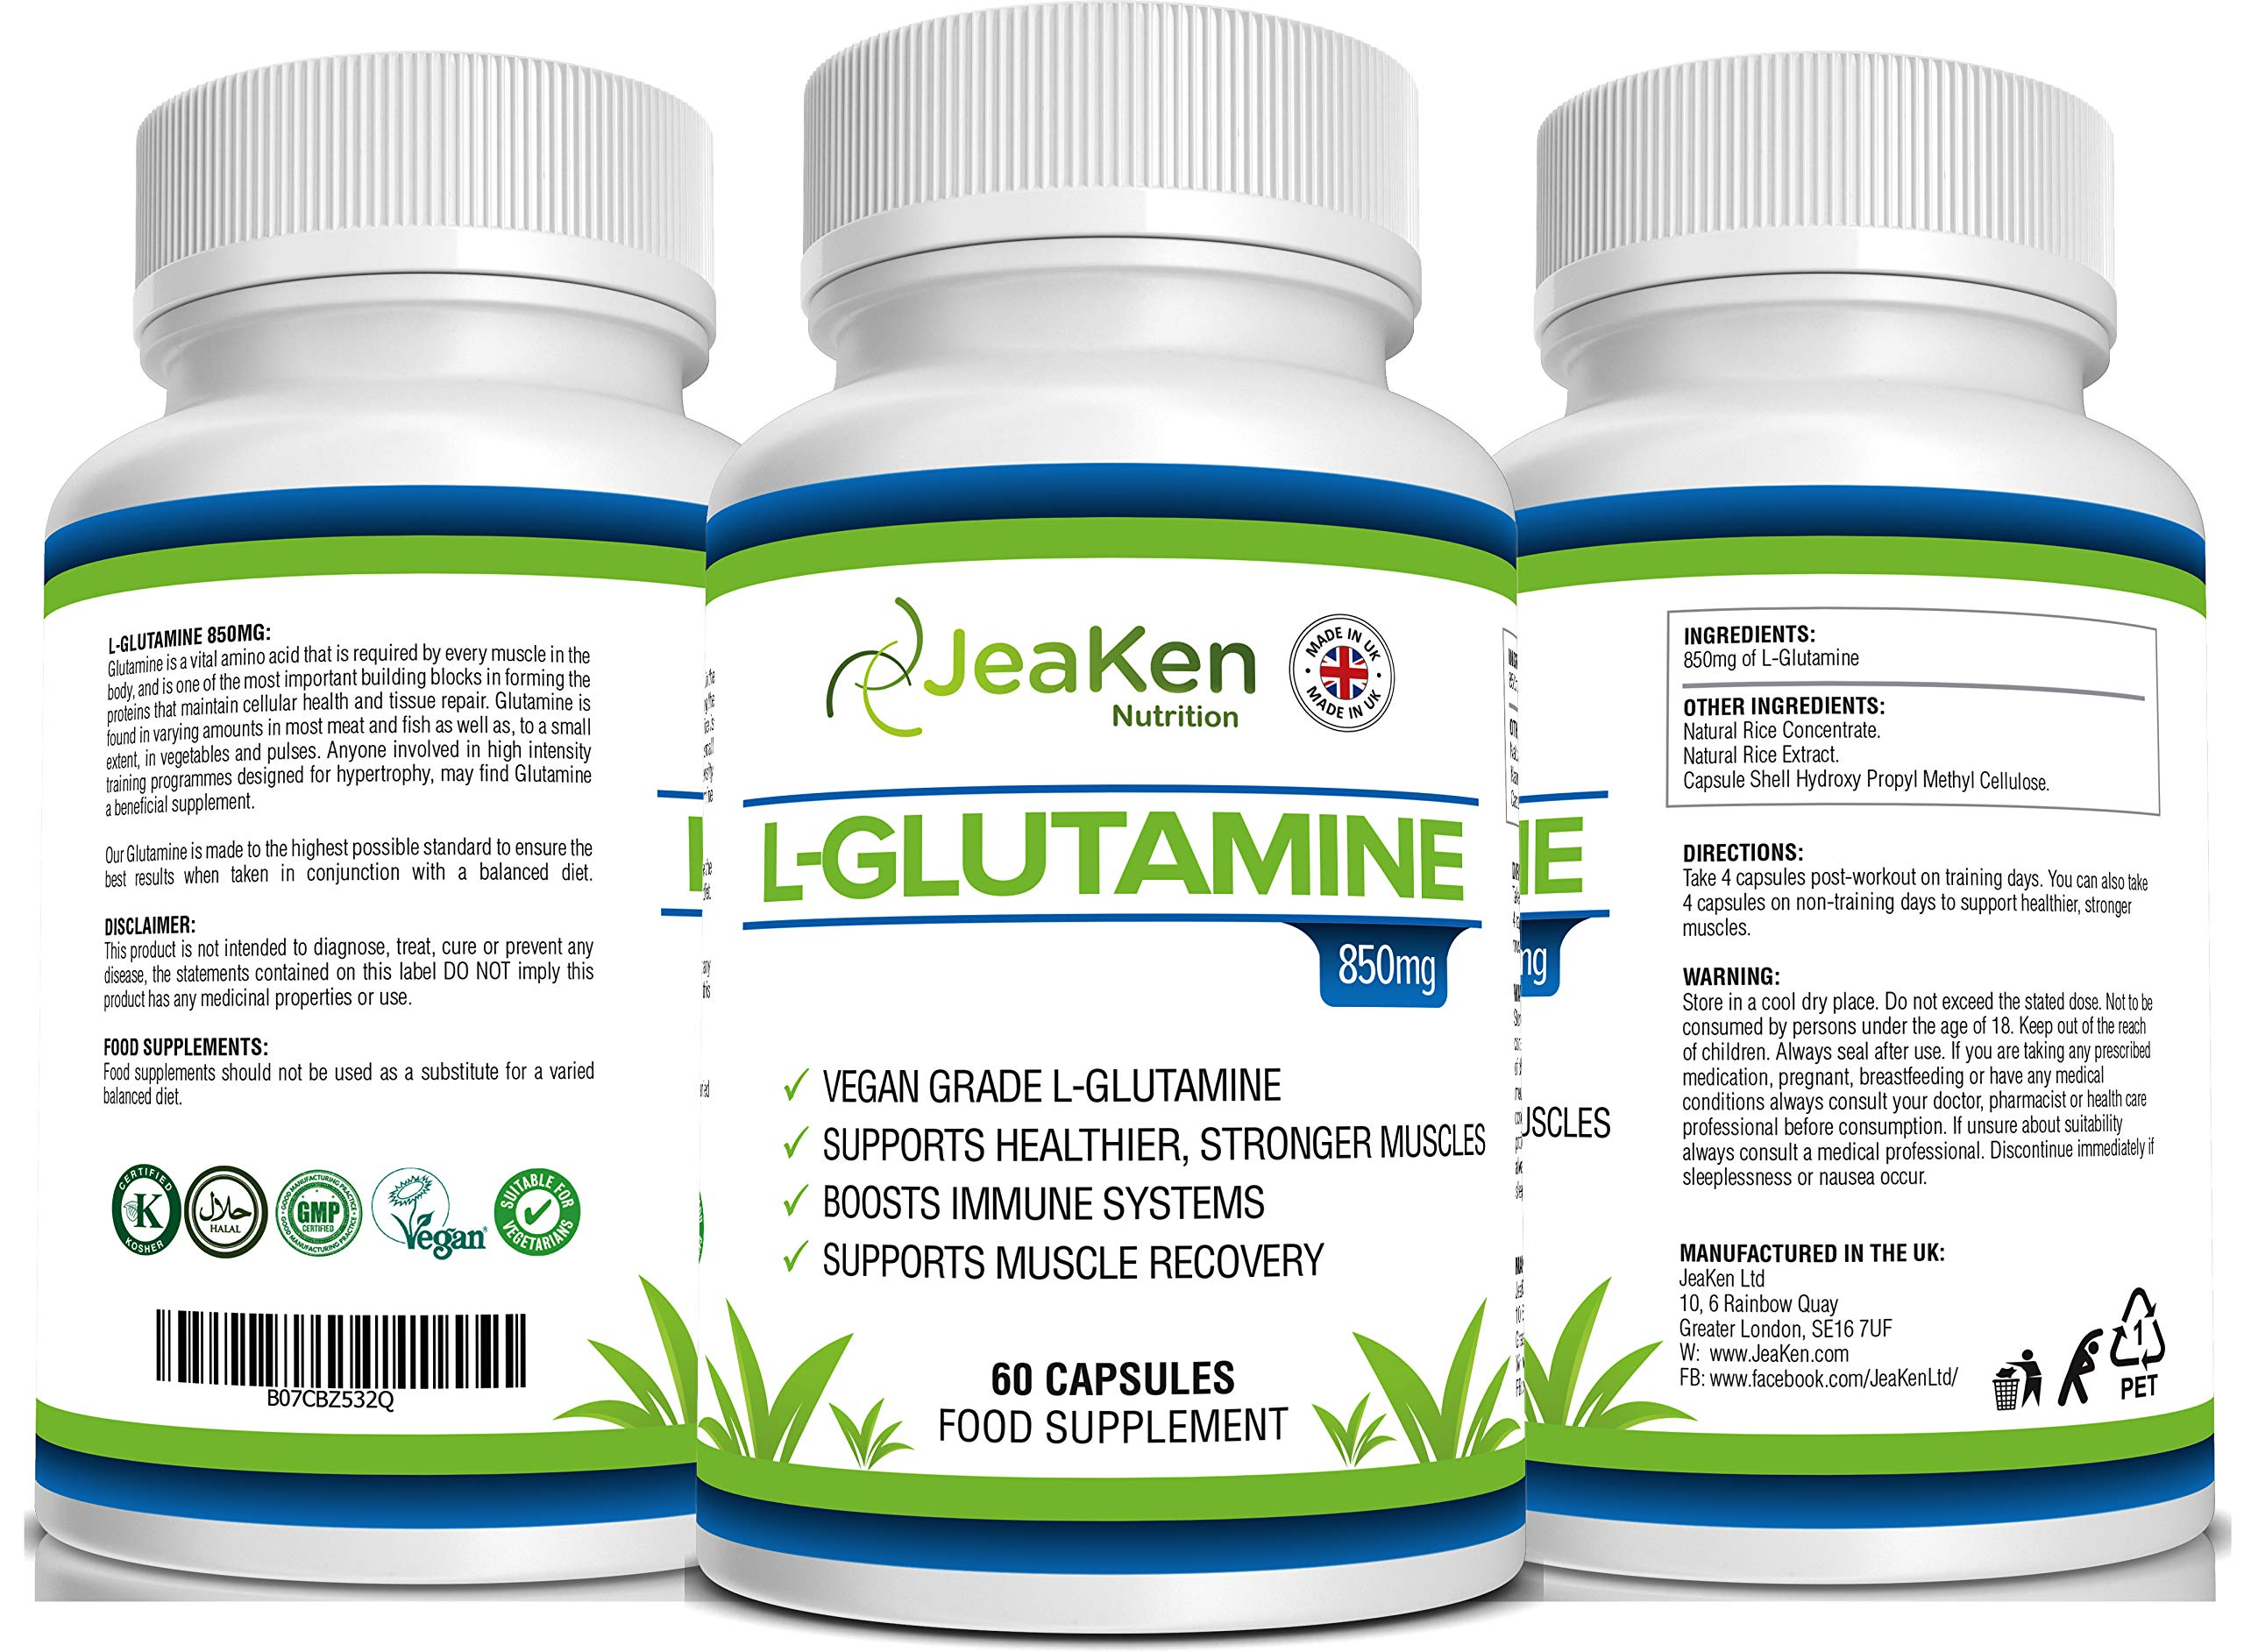 81Mx3o2C4uL - JeaKen - L-GLUTAMINE Capsules - from Essential Amino Acid Powder - Amino Acids Supplements to Boost Muscle Recovery…